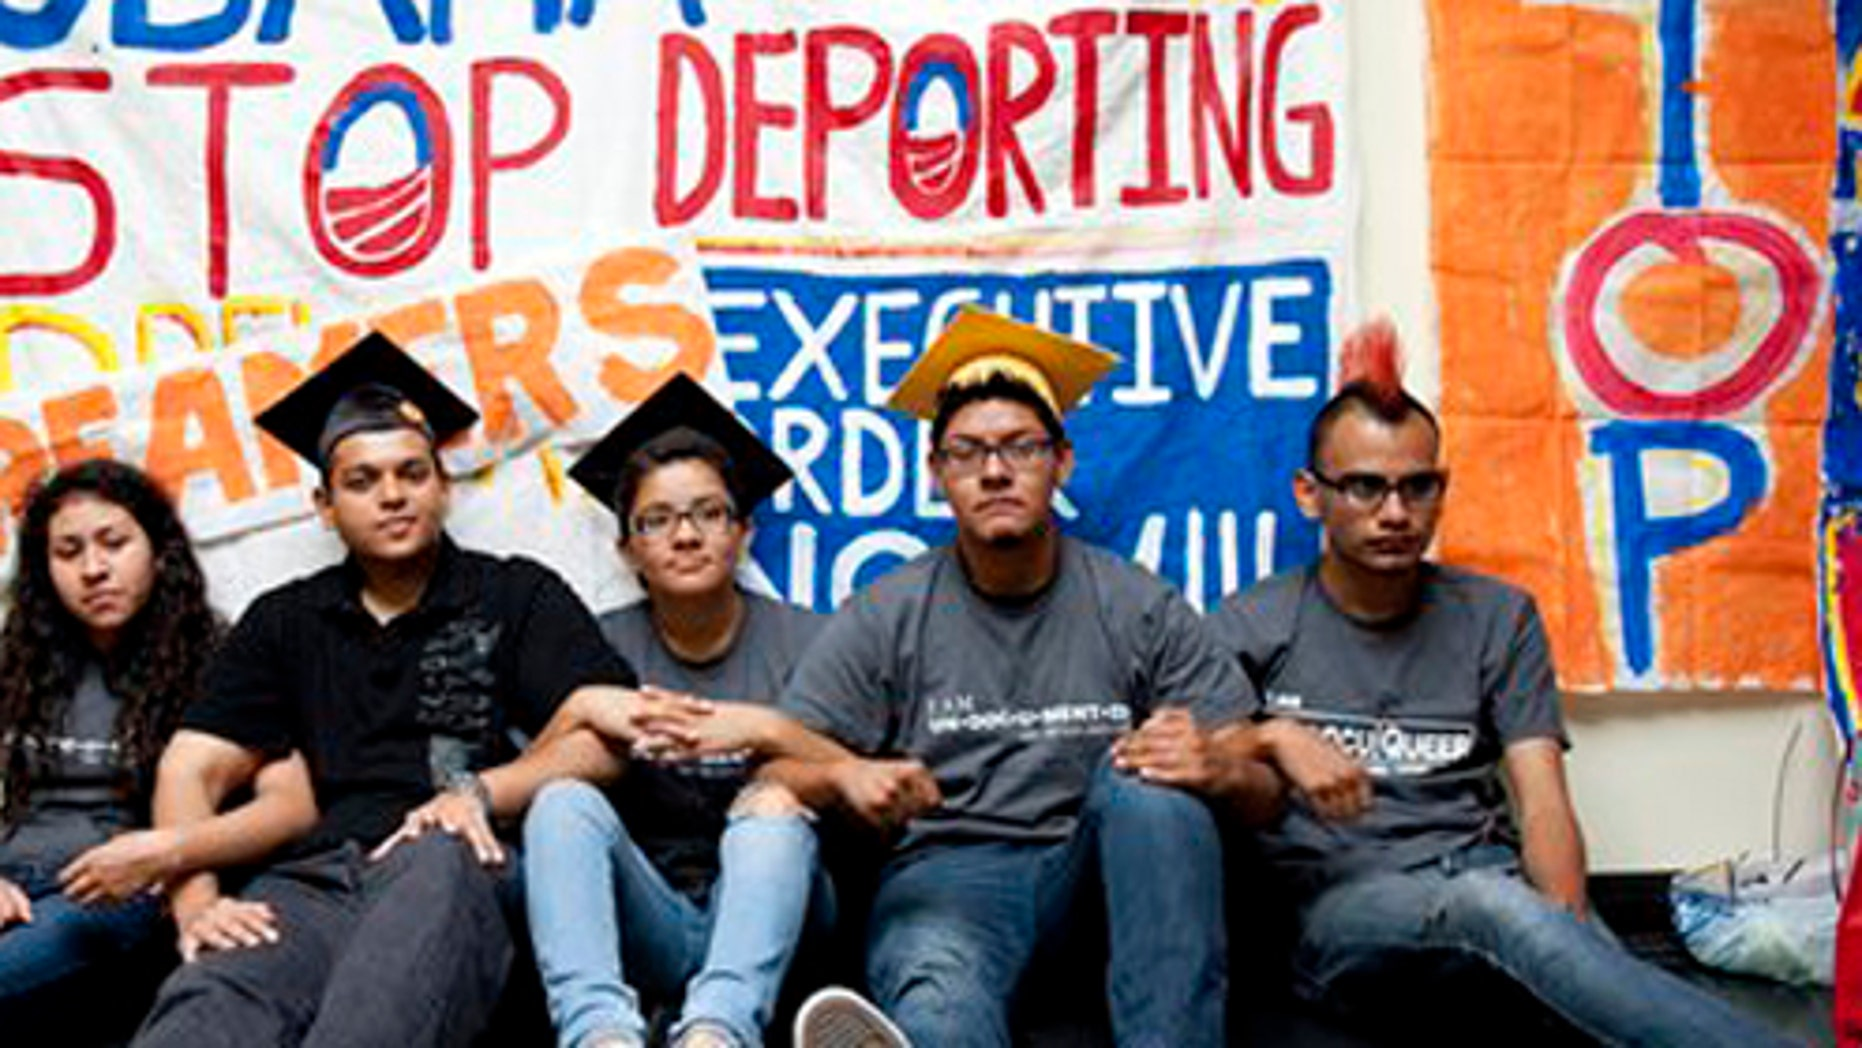 From left, Myisha Areloano, Adrian James, Jahel Campos, David Vuenrostro, and Antonio Cabrera camp outside of the Obama Campaign Headquarters in Culver City, Calif. in protest of President Obama's immigration policiesand in hopes of getting him to pass an executive order to halt discretionary deportation on Friday, June 16, 2012. President Obama eased enforcement of immigration laws Friday, offering a chance for hundreds of thousands of illegal immigrants to stay in the country and work. Immediately embraced by Hispanics, the extraordinary step touched off an election-year confrontation with congressional Republicans.  (AP Photo/Grant Hindsley)